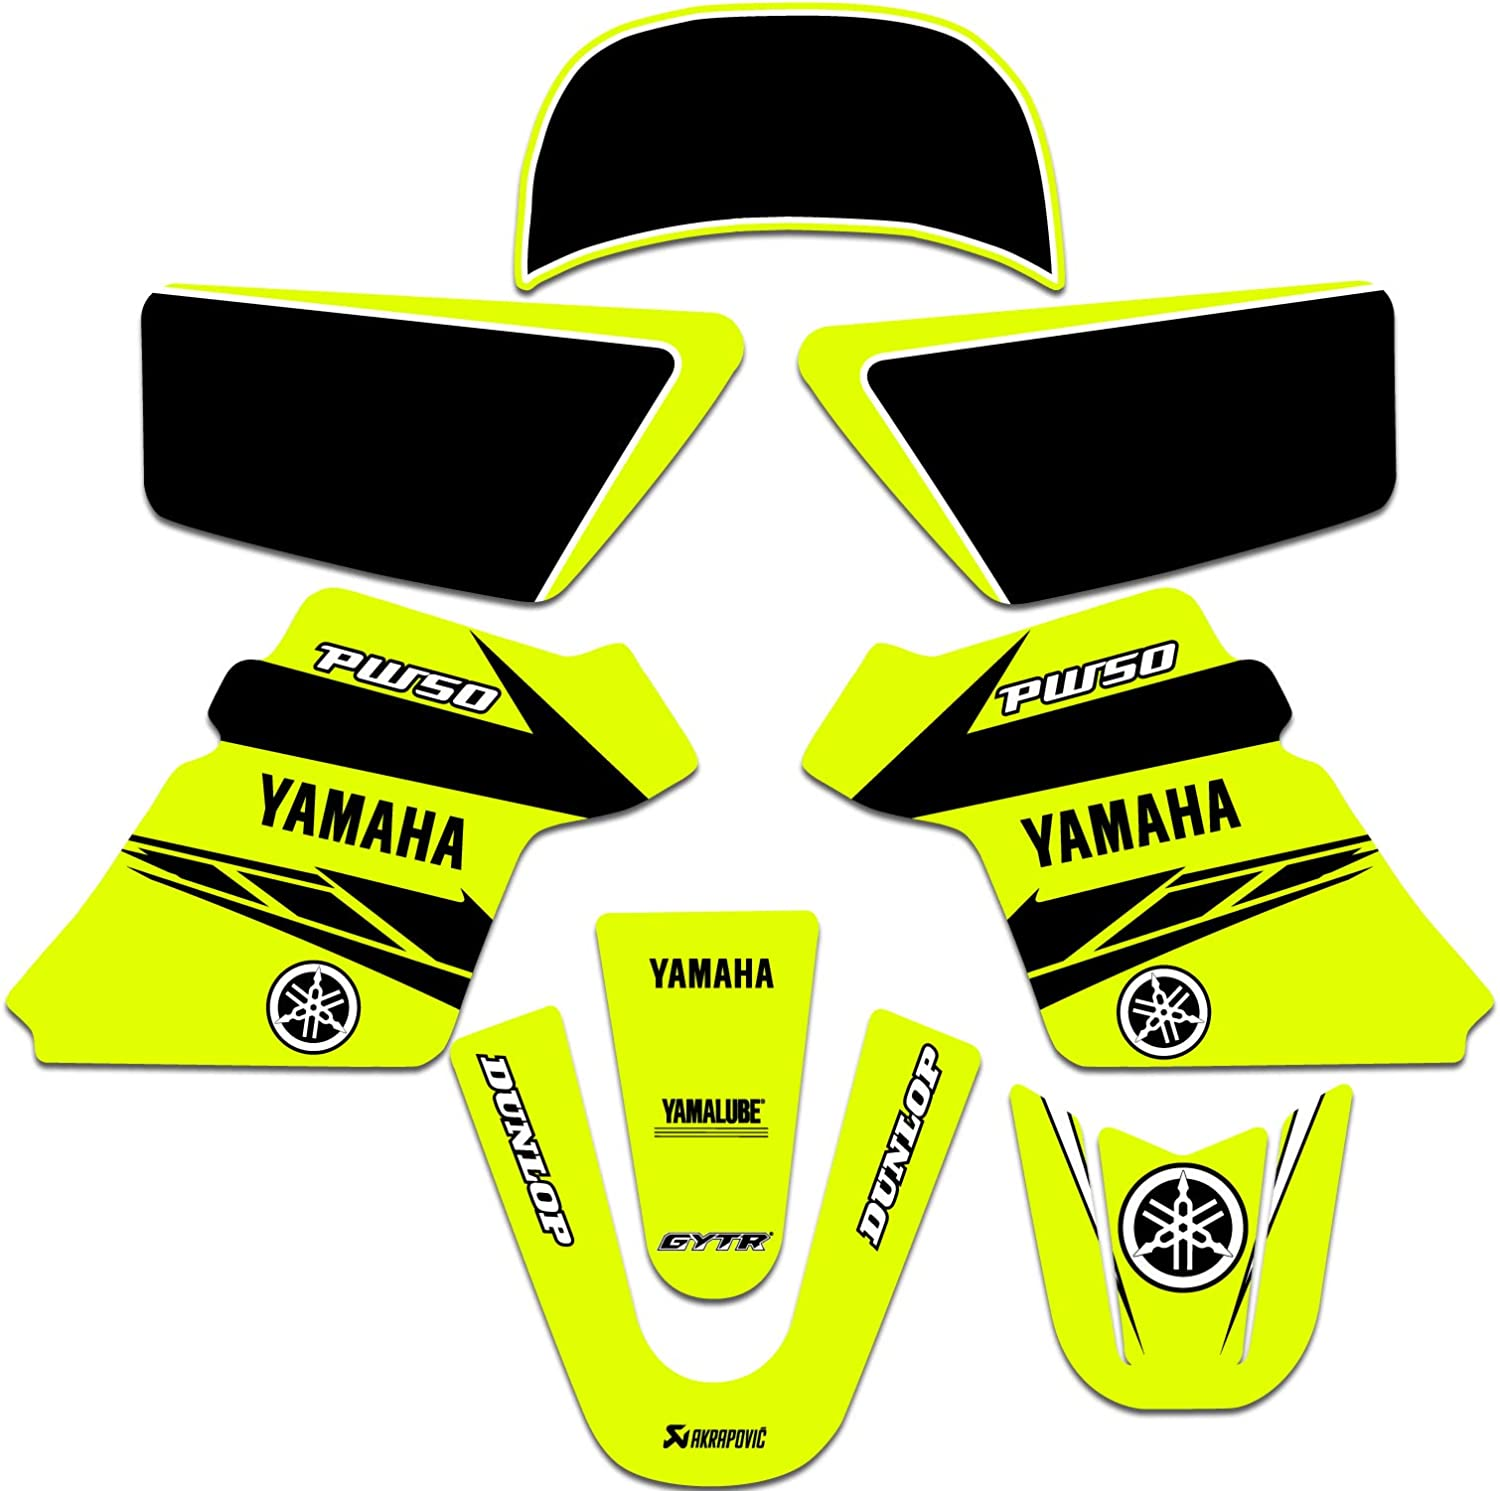 YAMAHA PW 50 Special price for a limited time PW50 GRAPHICS KIT NUMBER DECALS Free shipping anywhere in the nation BLANK Fits PLATE